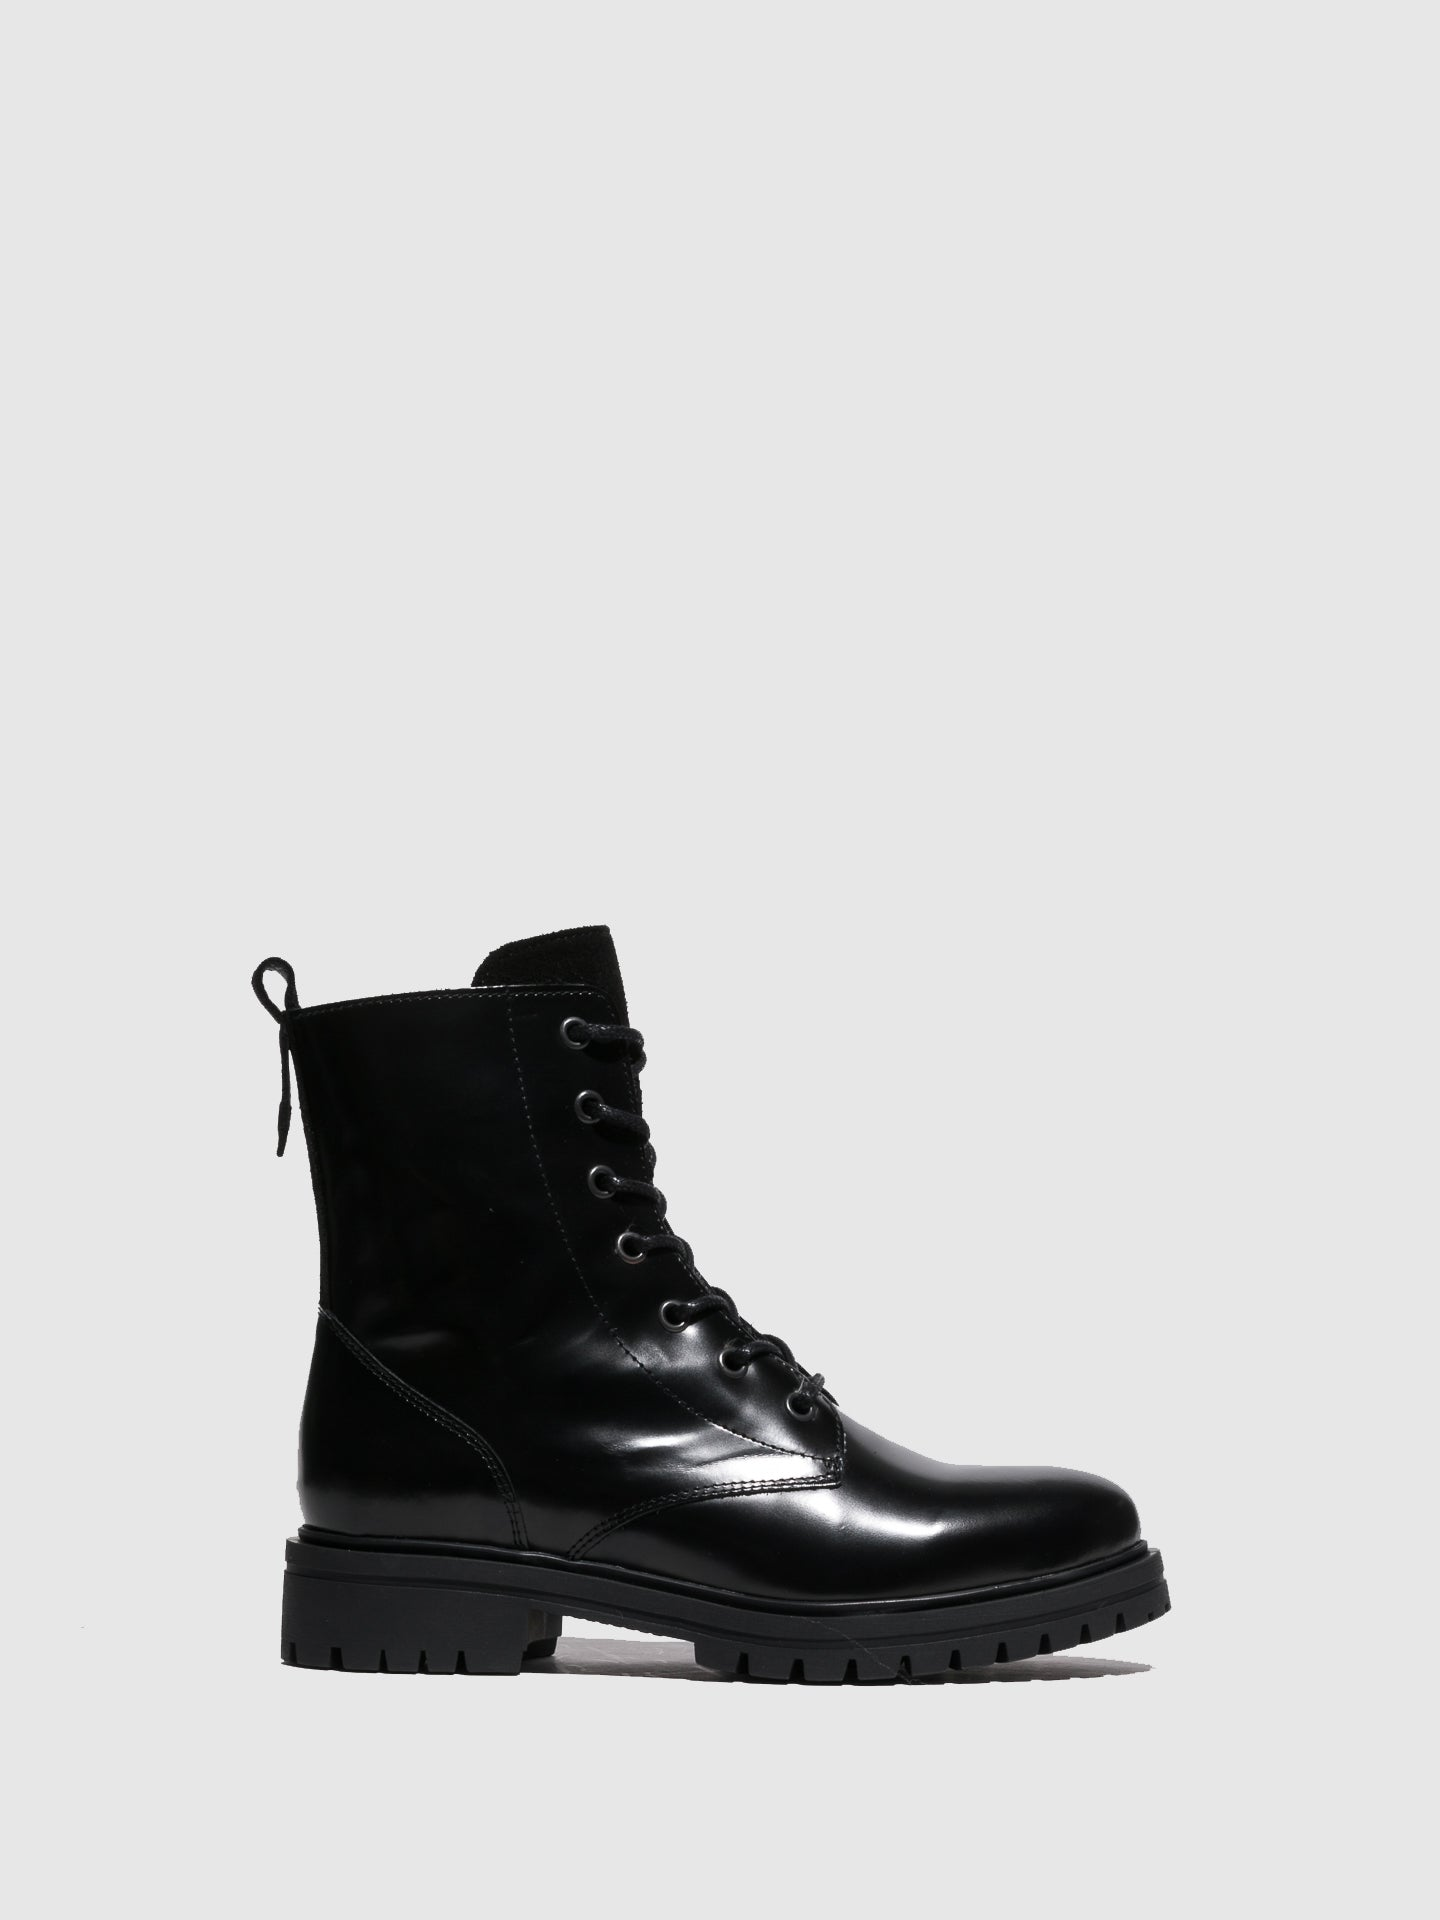 Fungi Black Lace-up Boots